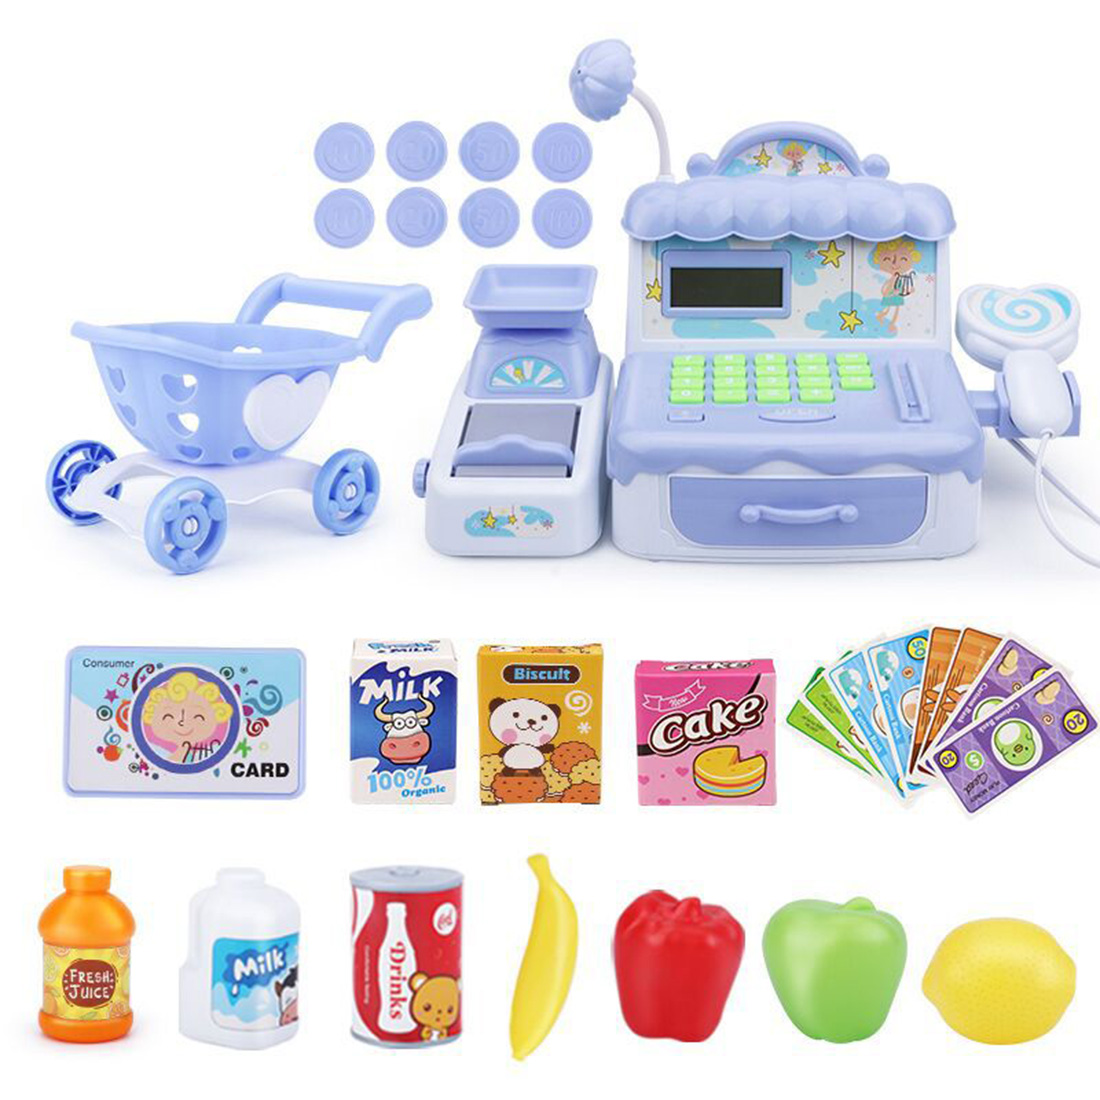 30Pcs Children Pretend Play Mini Supermarket Shopping Cart Toy Cash Register Playset Kids Pretend Play Early Educational Toys